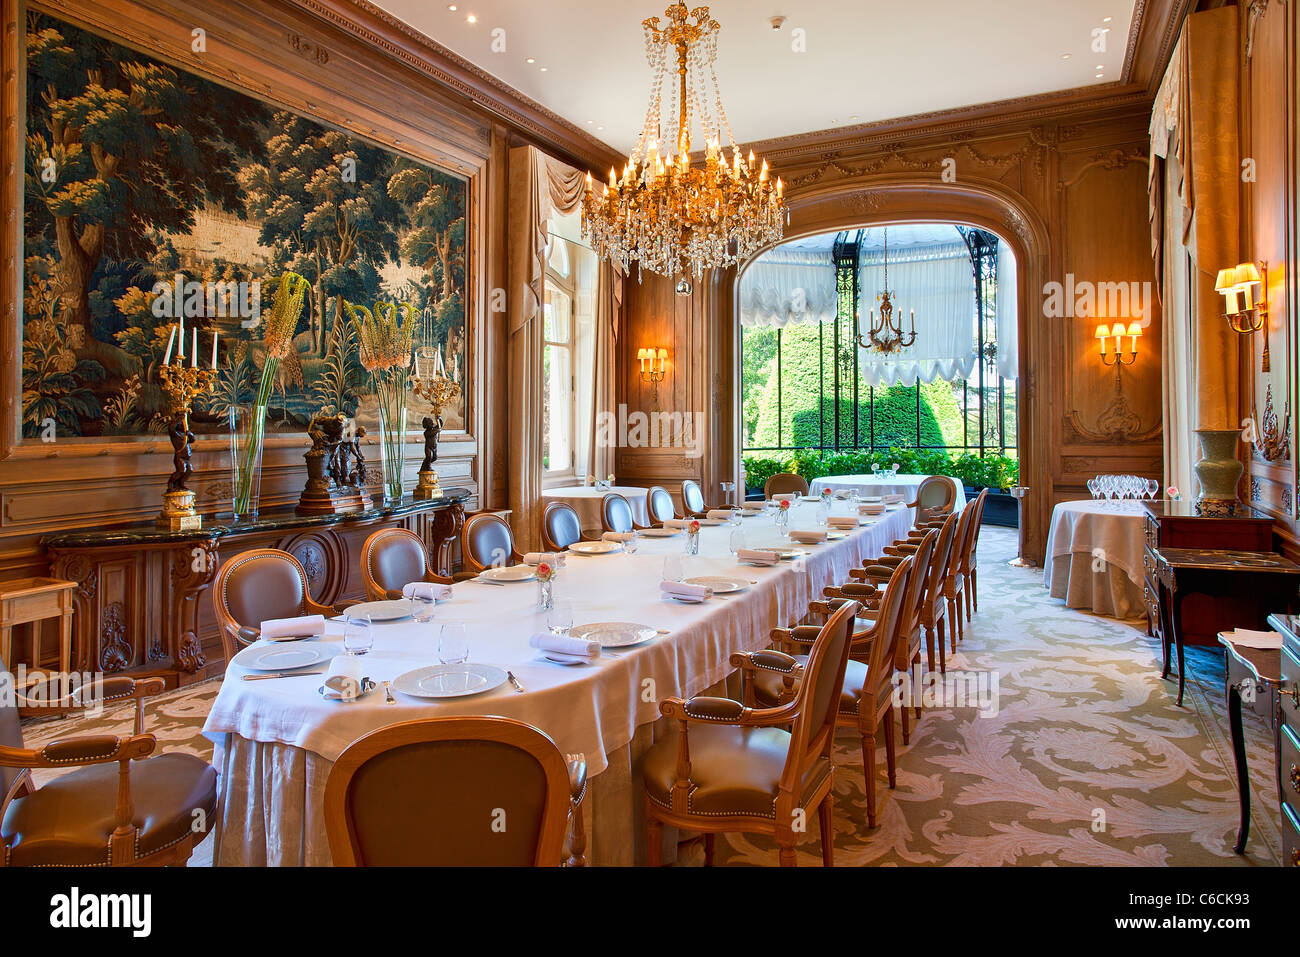 France marne reims chateau les crayeres restaurant for Hotel design reims